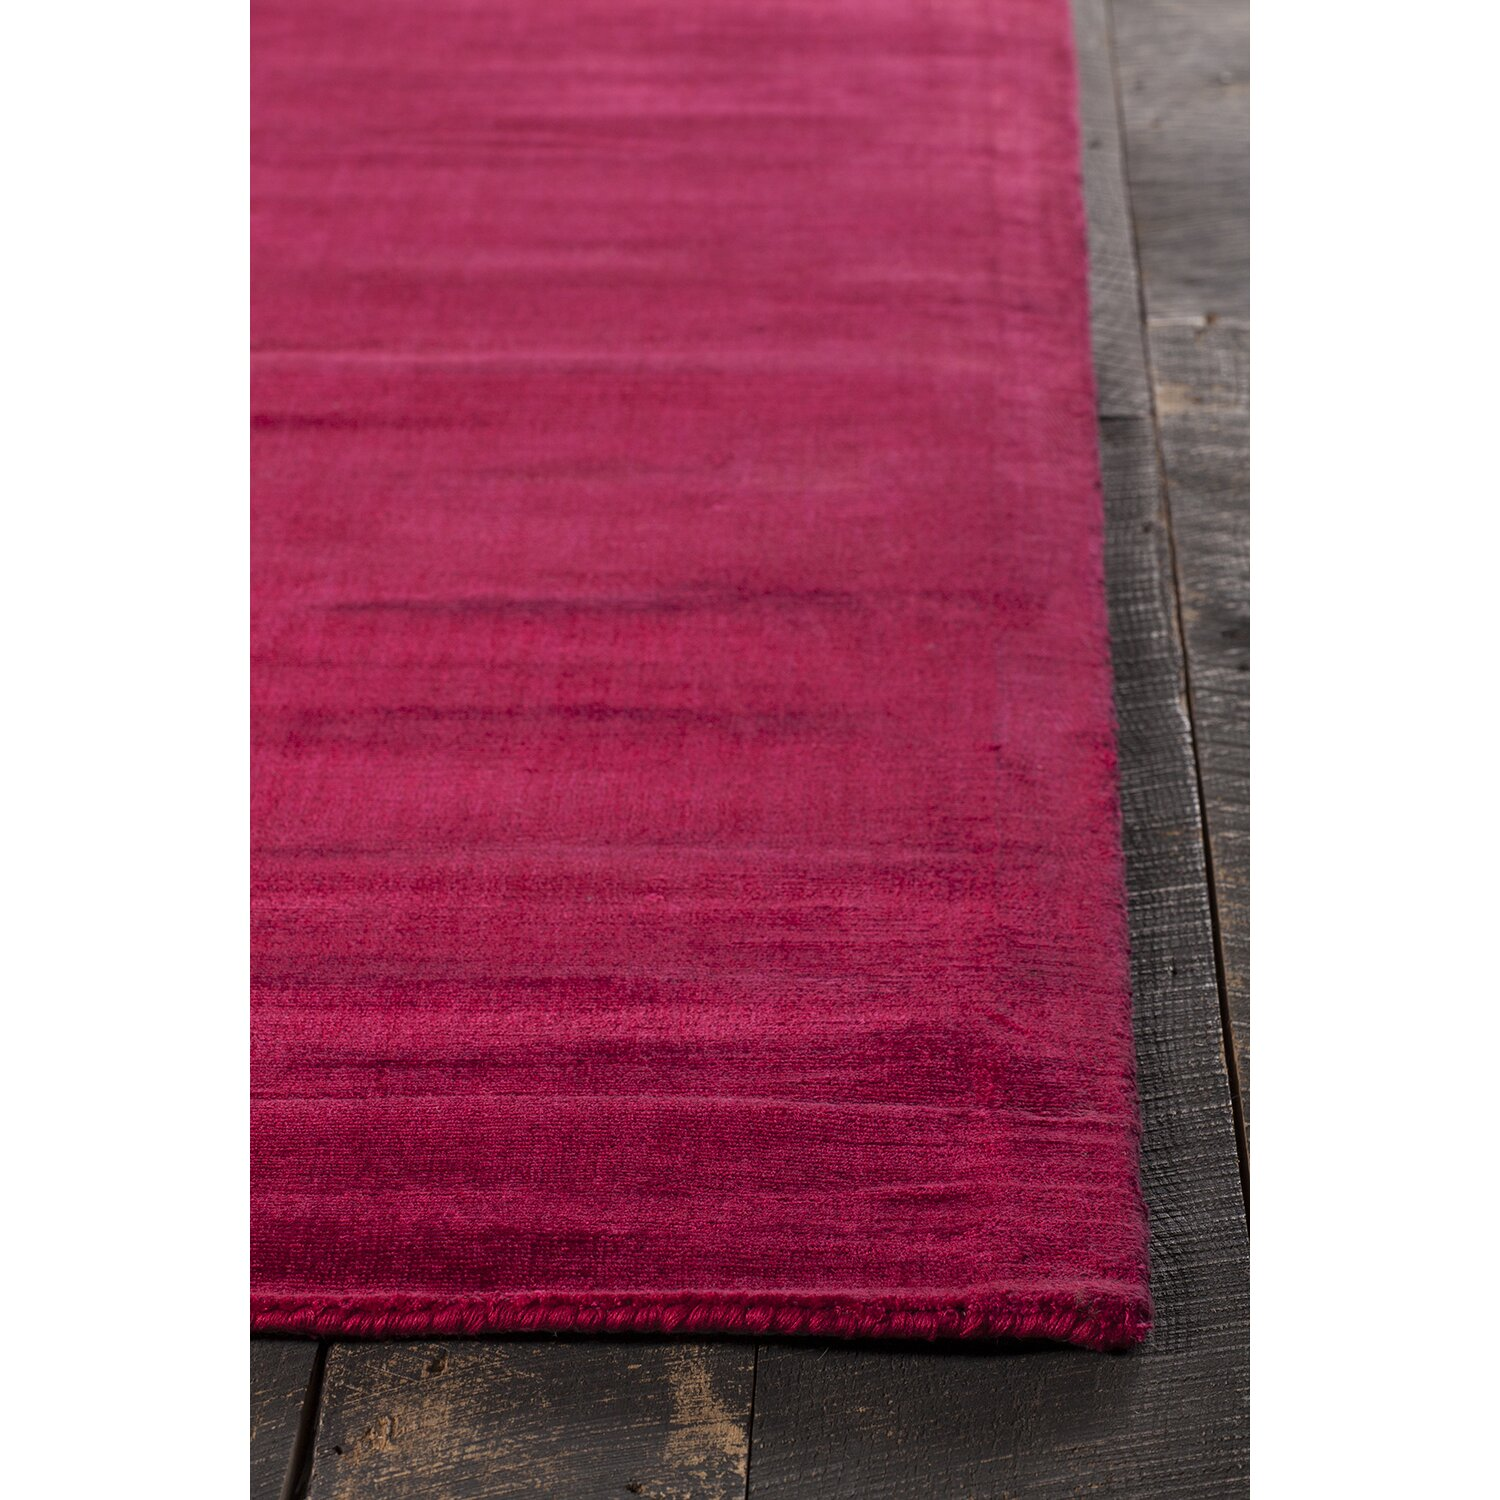 Chandra Gelco Hand Woven Red Area Rug Allmodern